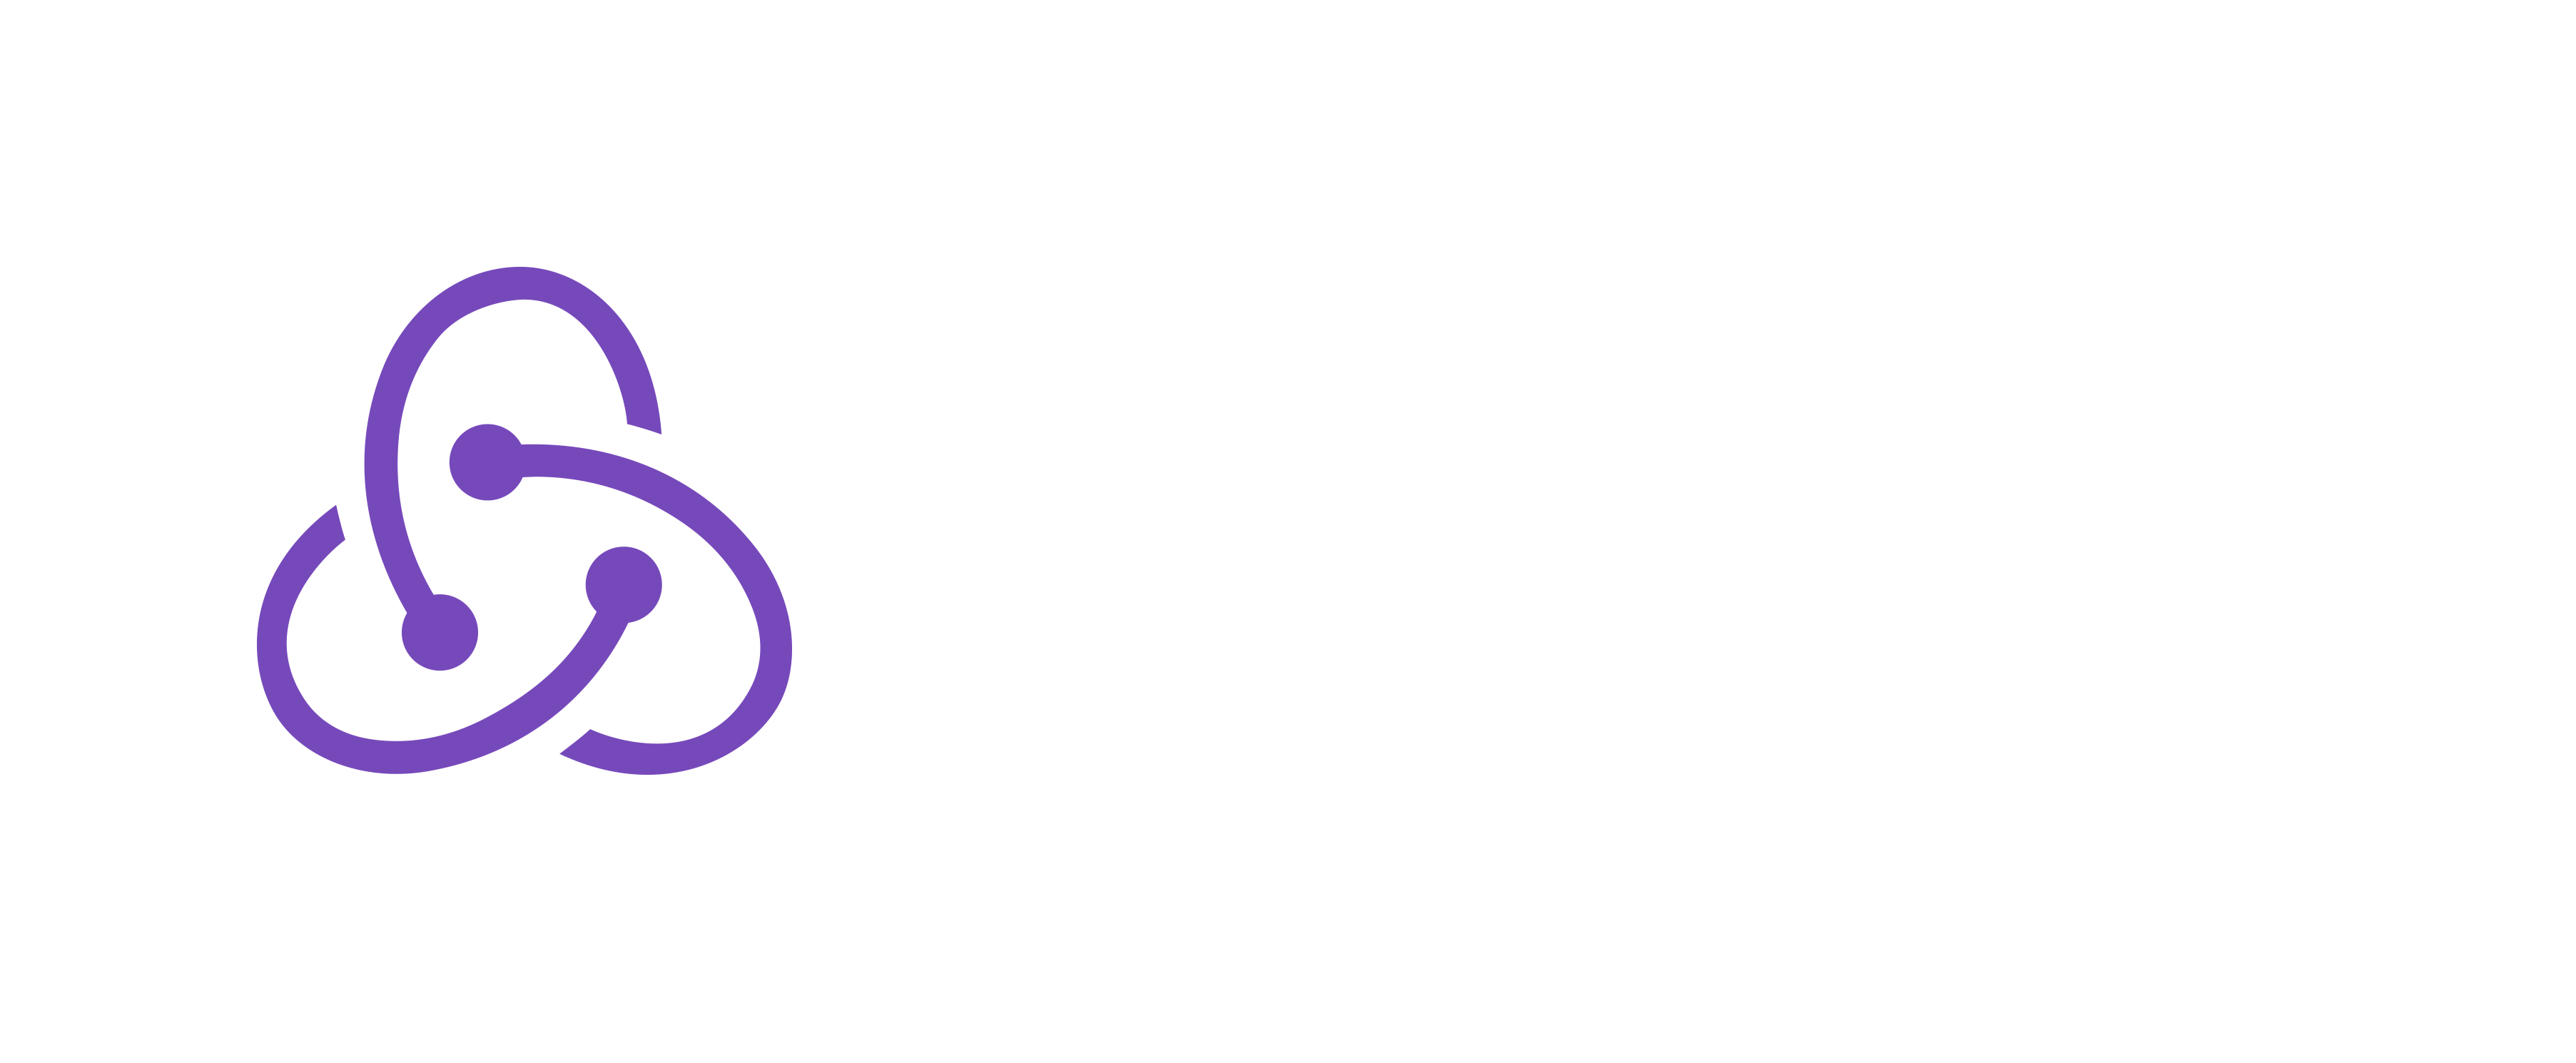 Redux Logo with Light Title